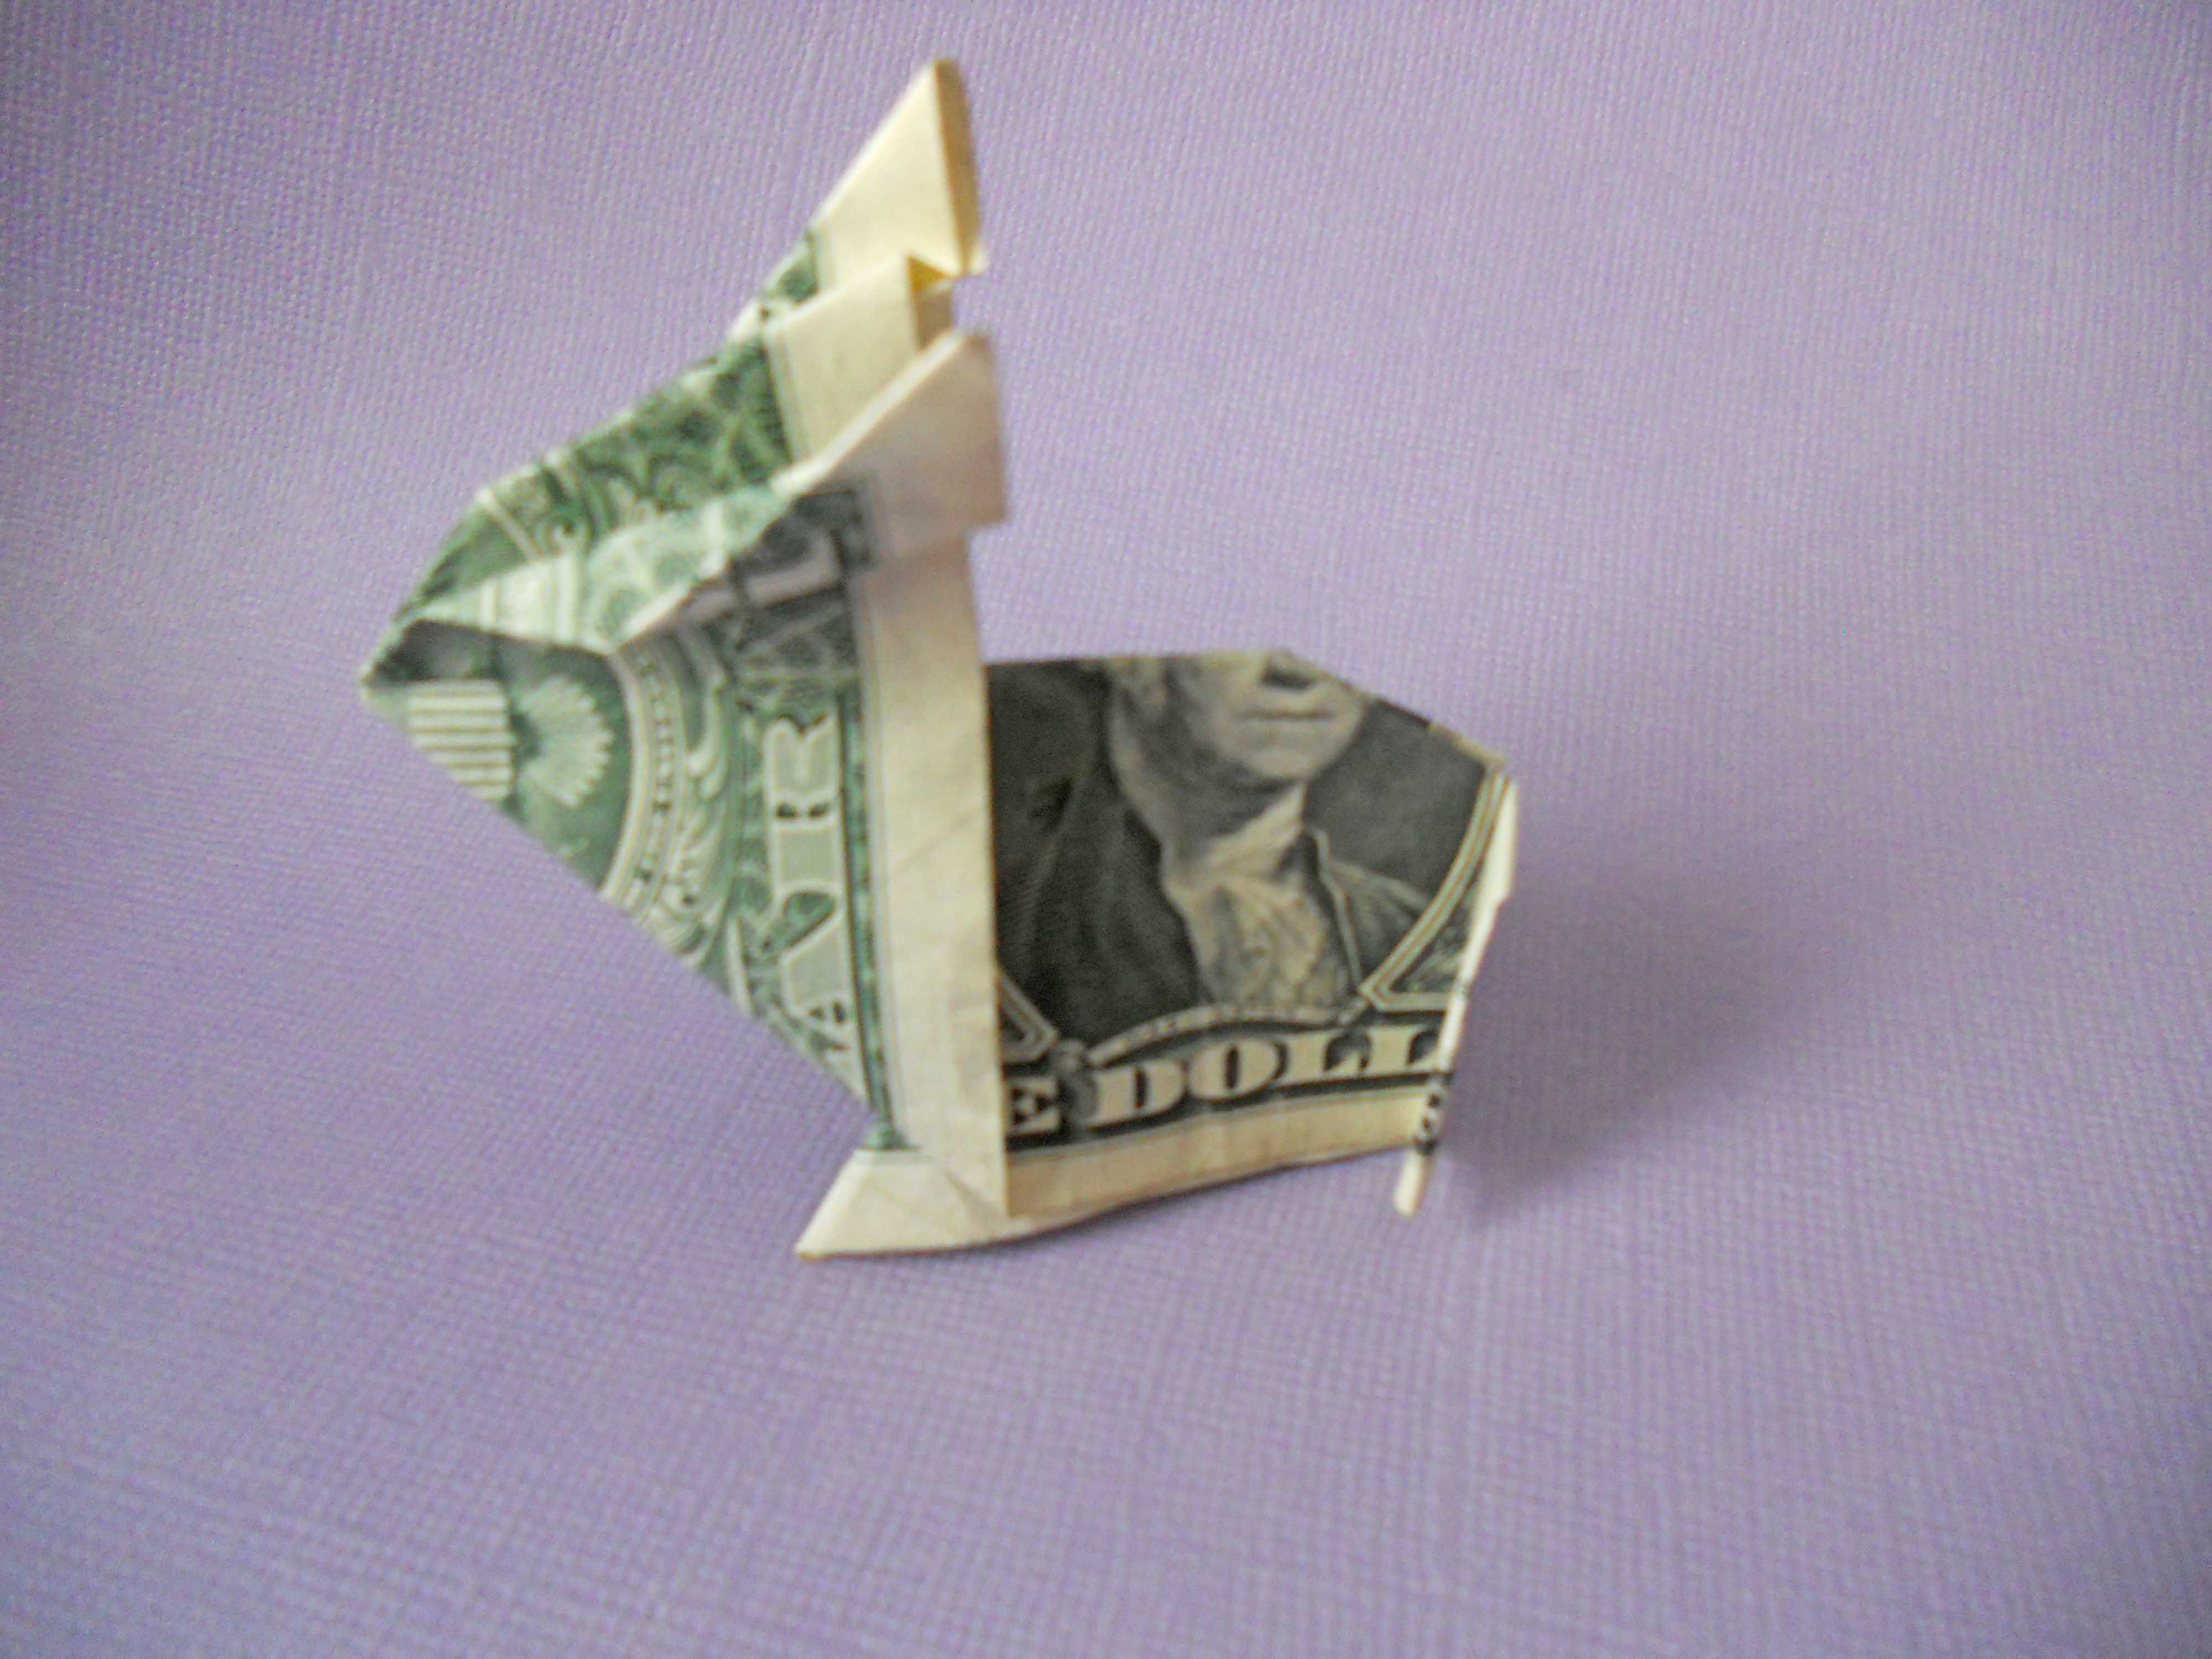 Learn How to Make a Crafty Origami Bunny Out of Cash - photo#49